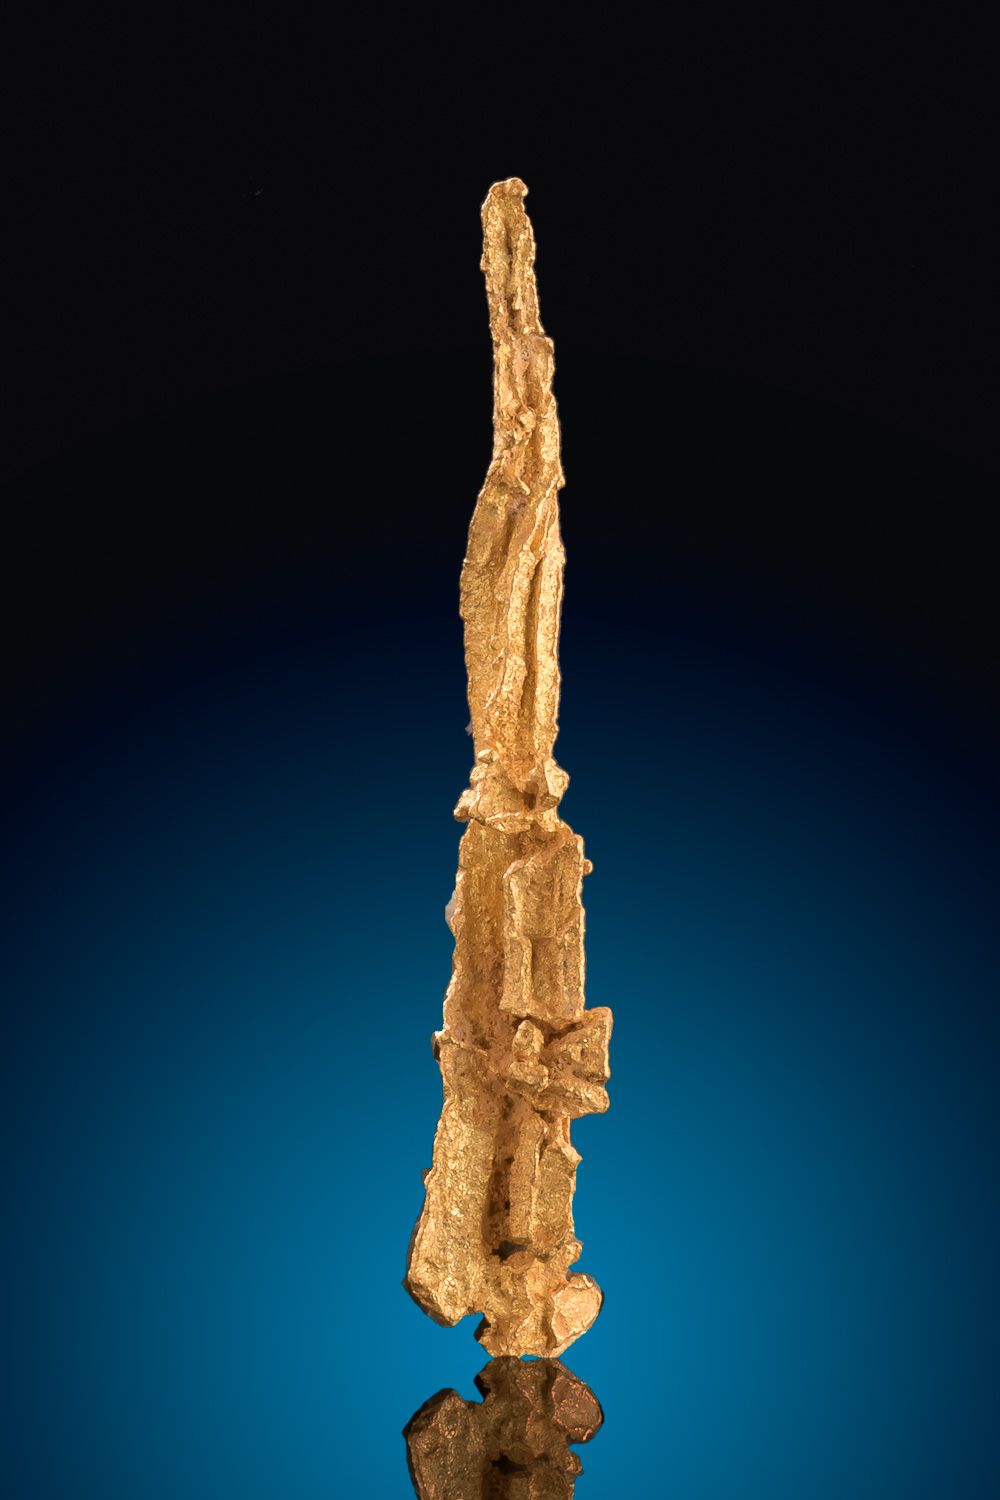 Long and Spear Shaped Gold Crystal - Georgetown, AUS